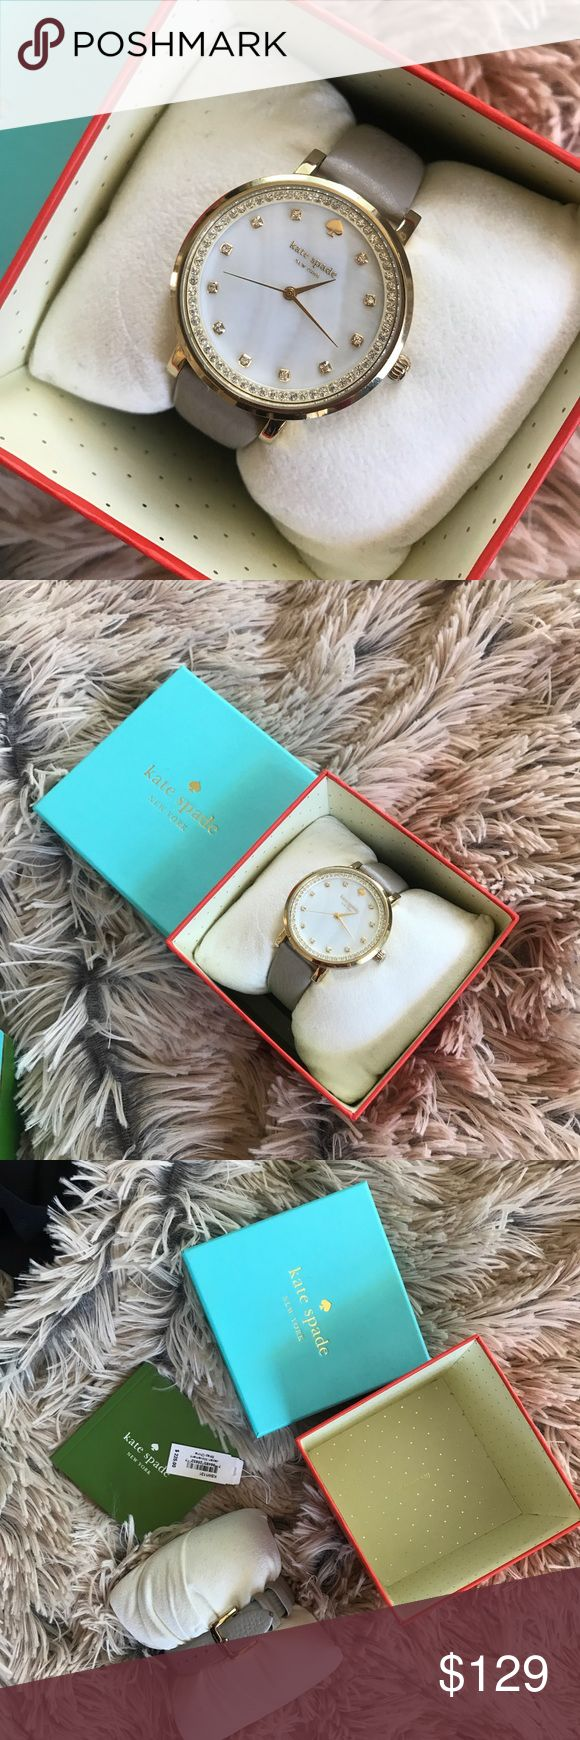 Kate Spade gold watch diamonds 💎 Beautiful watch only worn a couple times great condition. Comes with box and original tag $255 retail. kate spade Accessories Watches